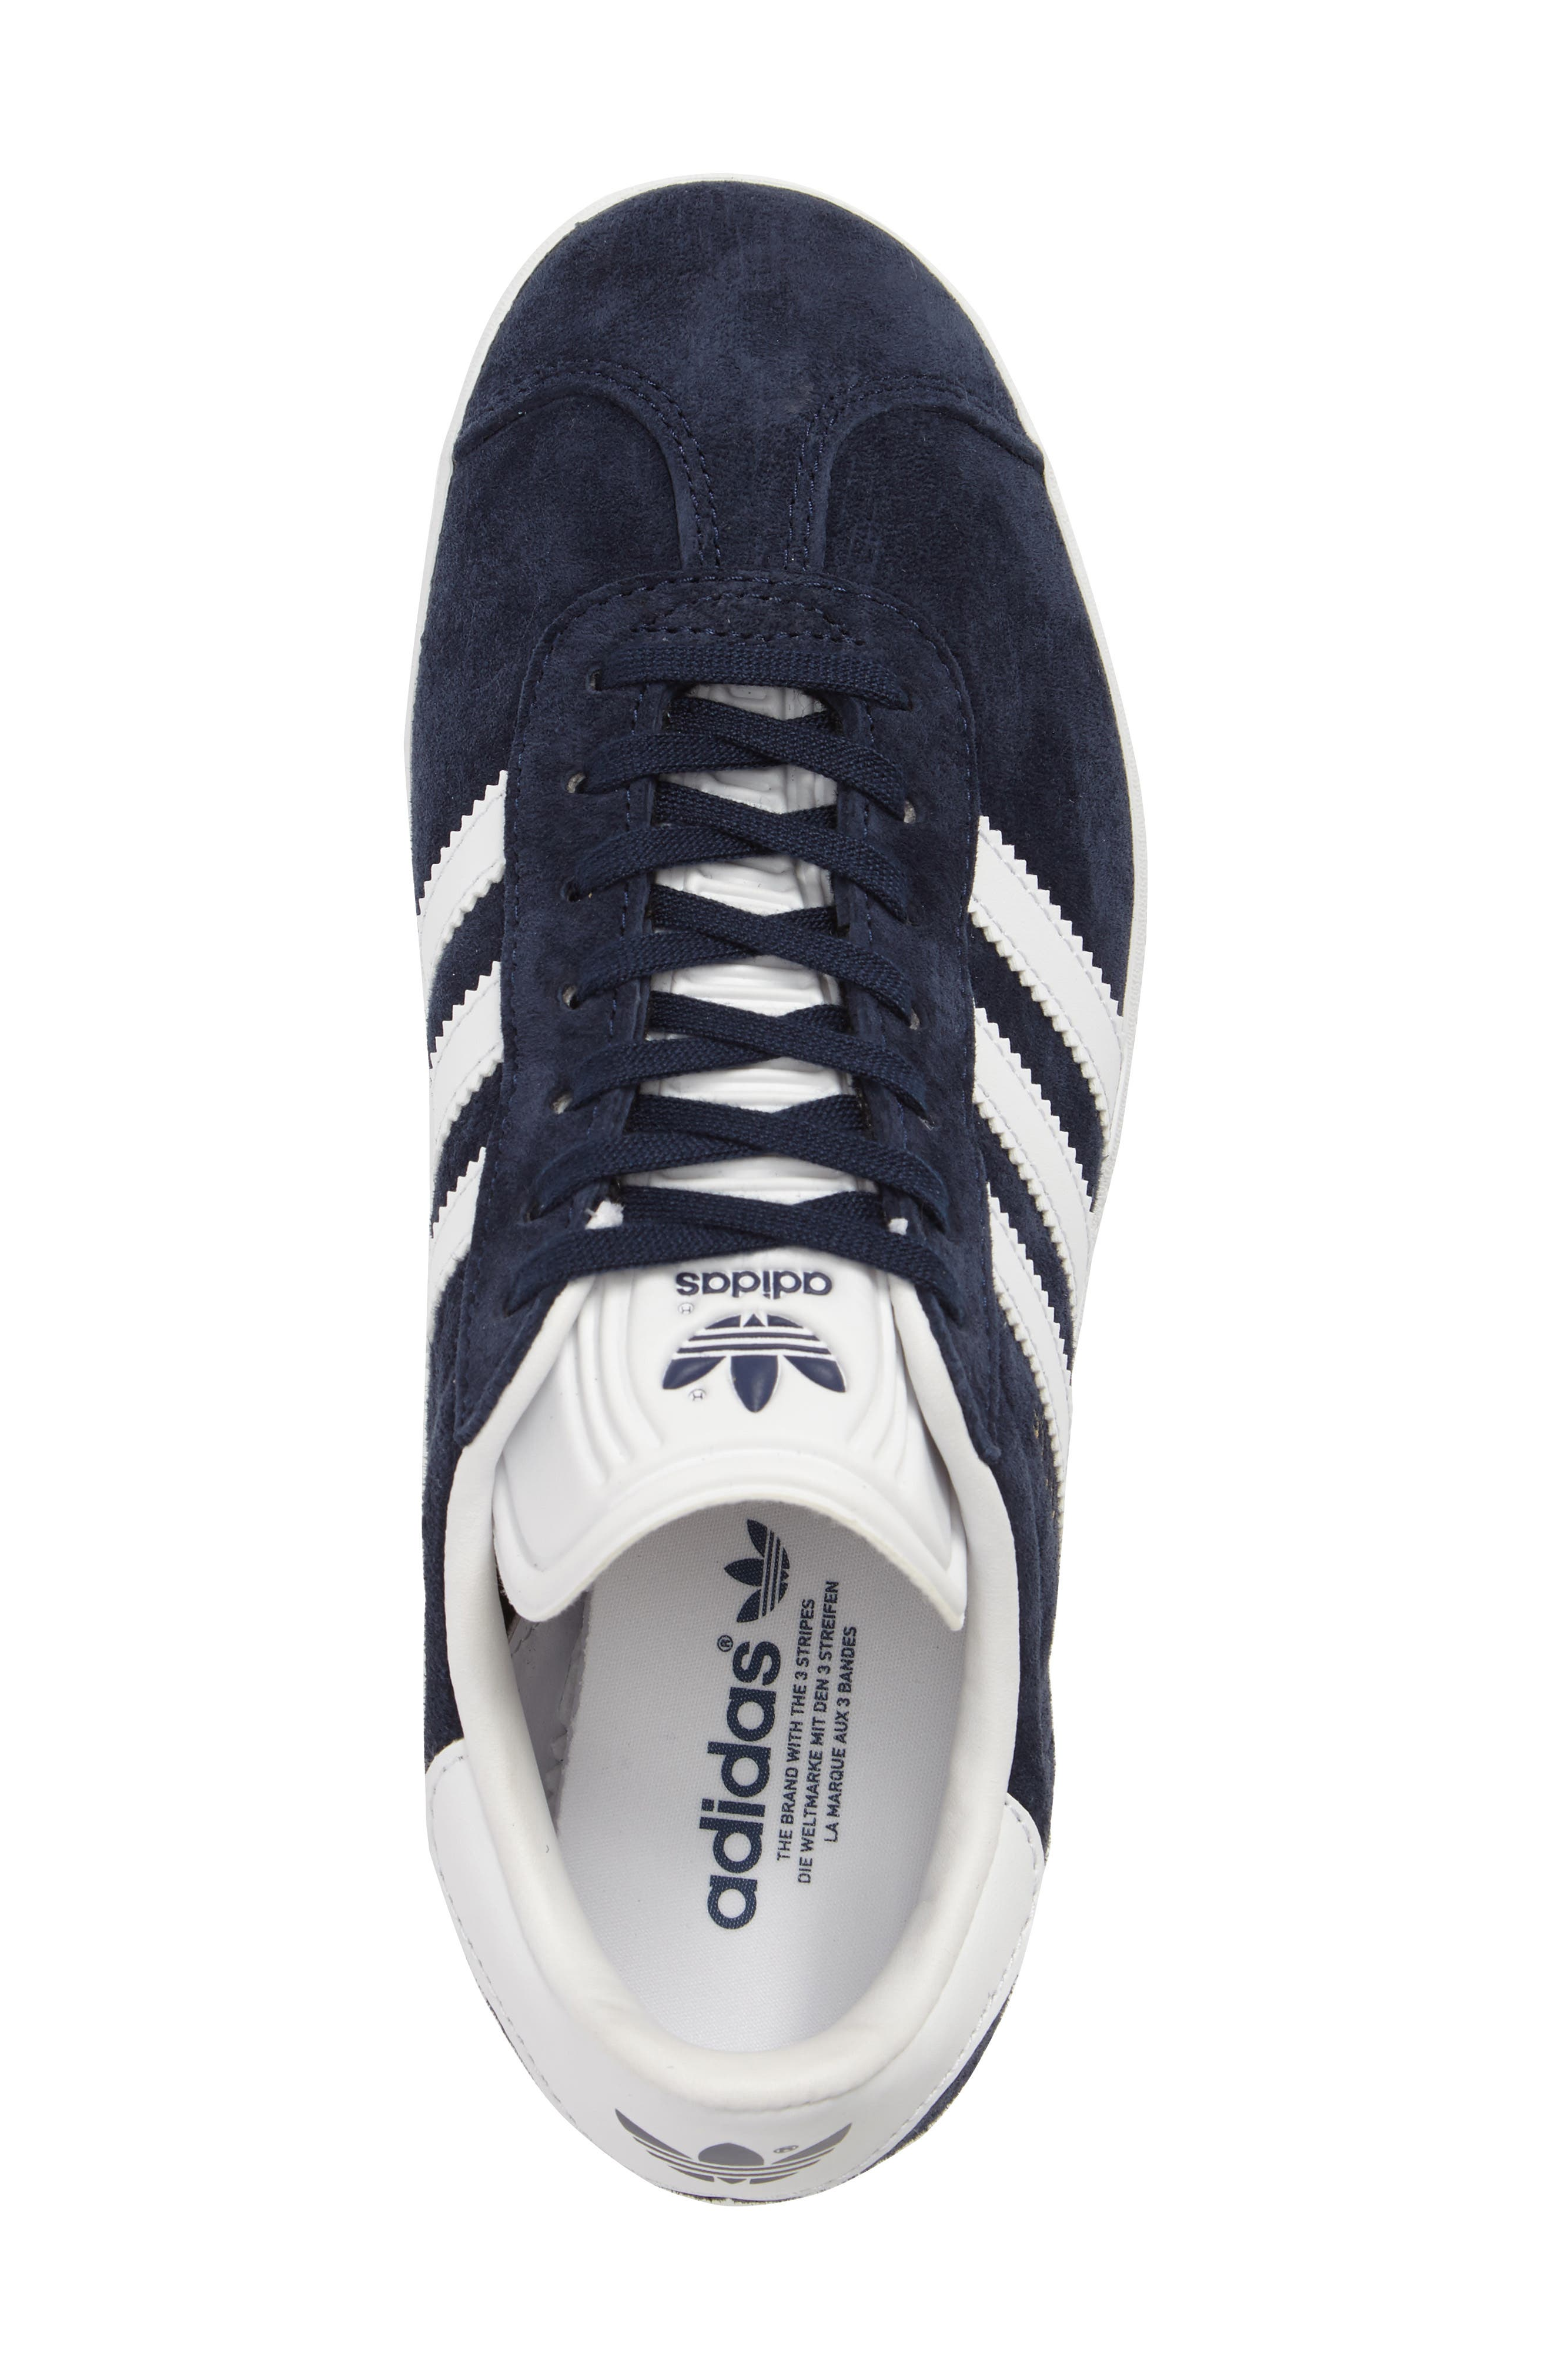 Gazelle Sneaker,                             Alternate thumbnail 5, color,                             Navy/ White/ Gold Metallic